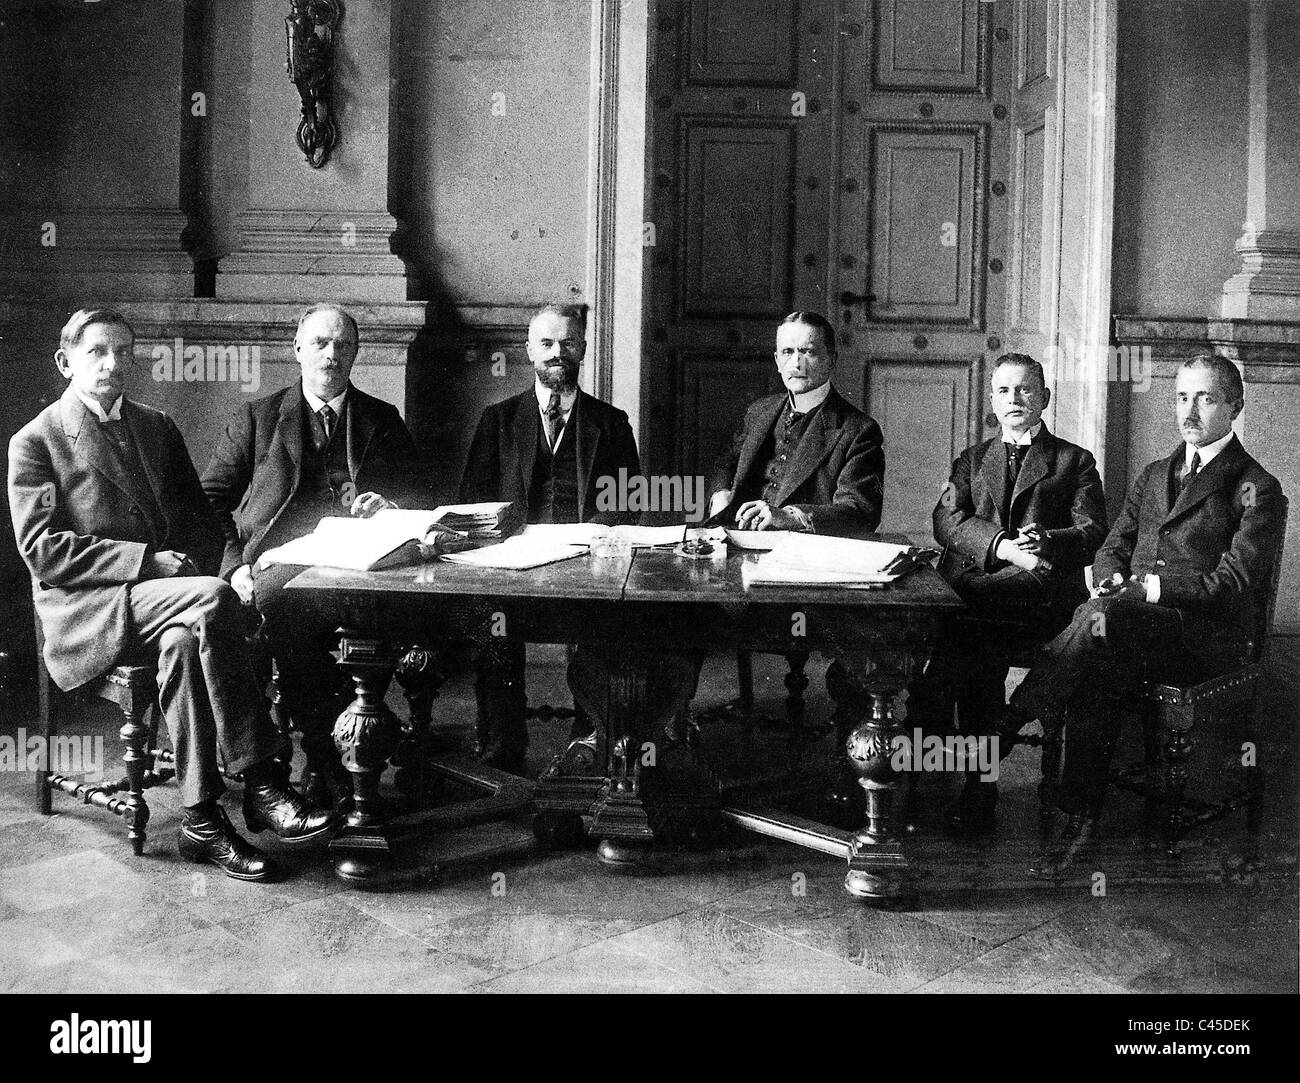 account of the treaty of versailles See more of treaty of versailles on facebook log in forgot account.